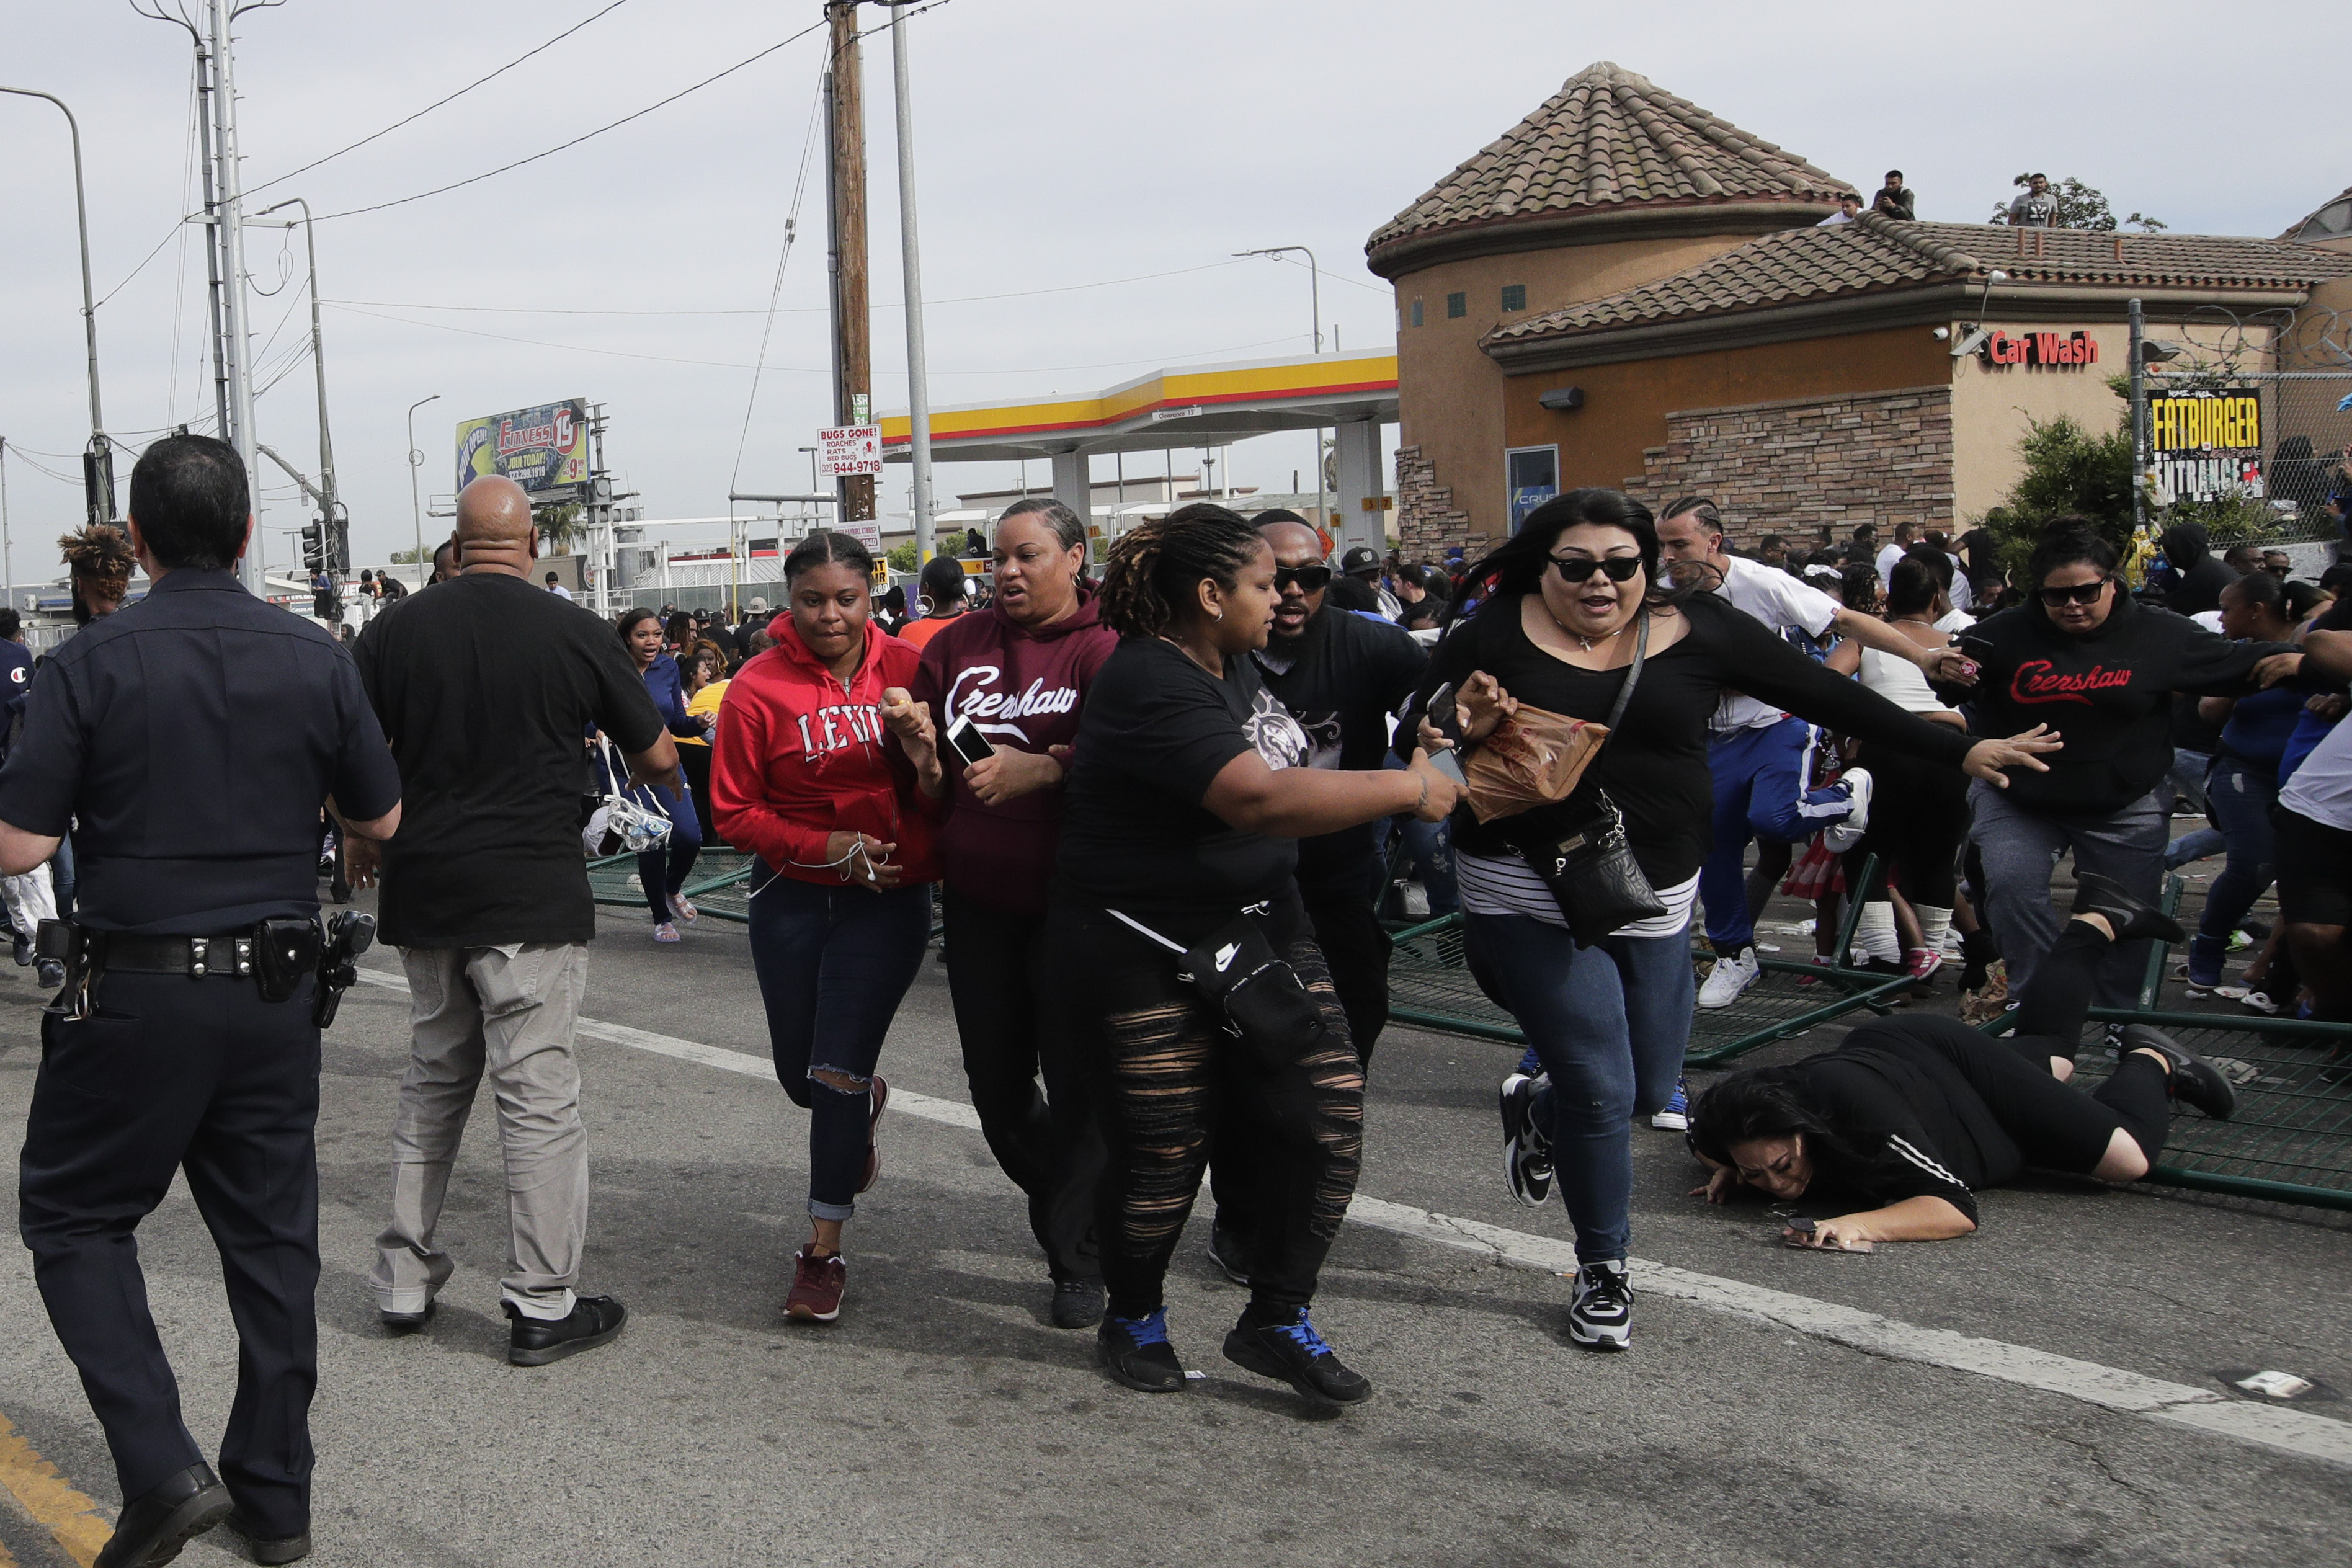 Around 10,000 mourners lined the streets of LA. Credit: PA